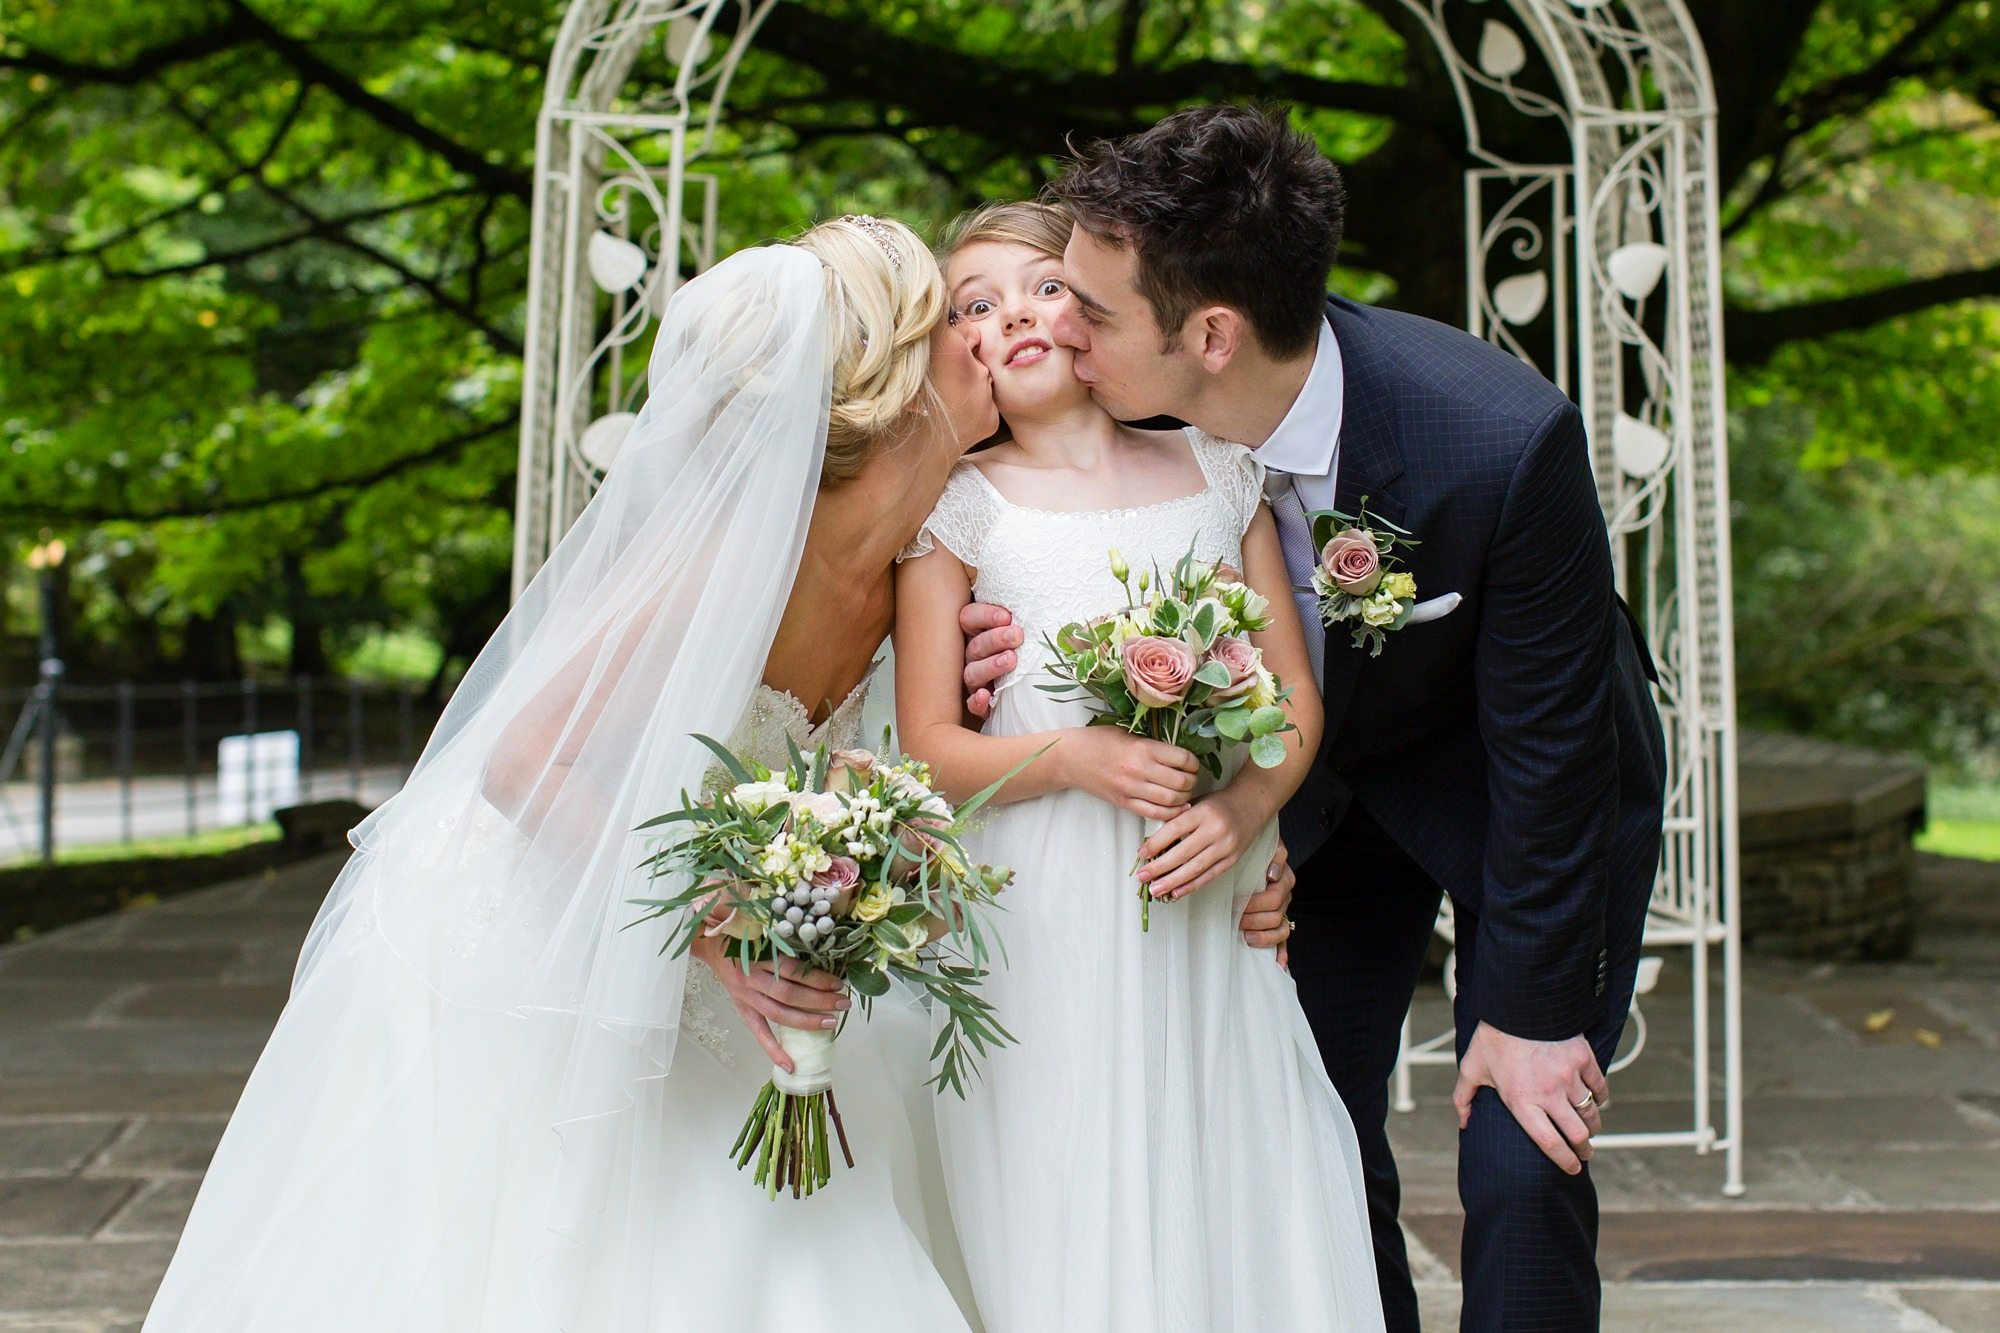 Bride & groom kiss daughter Tips for Children at Weddings